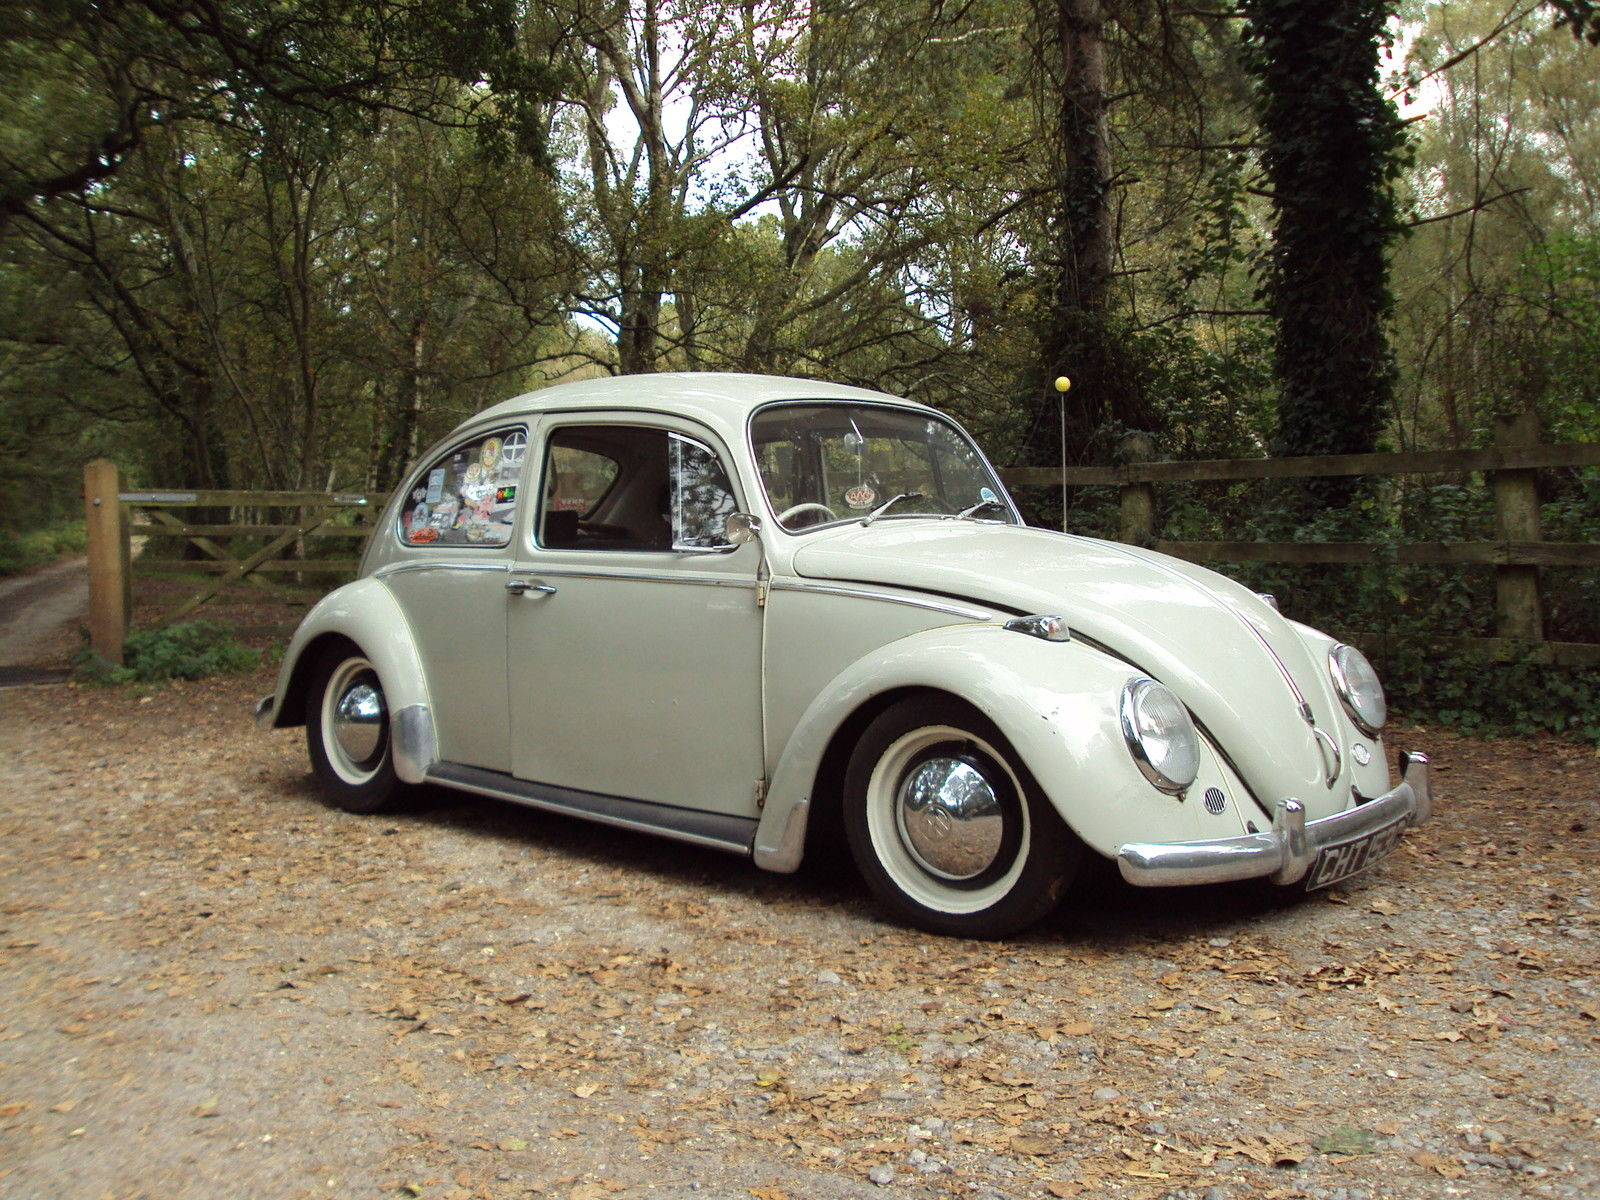 for sale volkswagen beetle grey 1965 buy classic volks. Black Bedroom Furniture Sets. Home Design Ideas